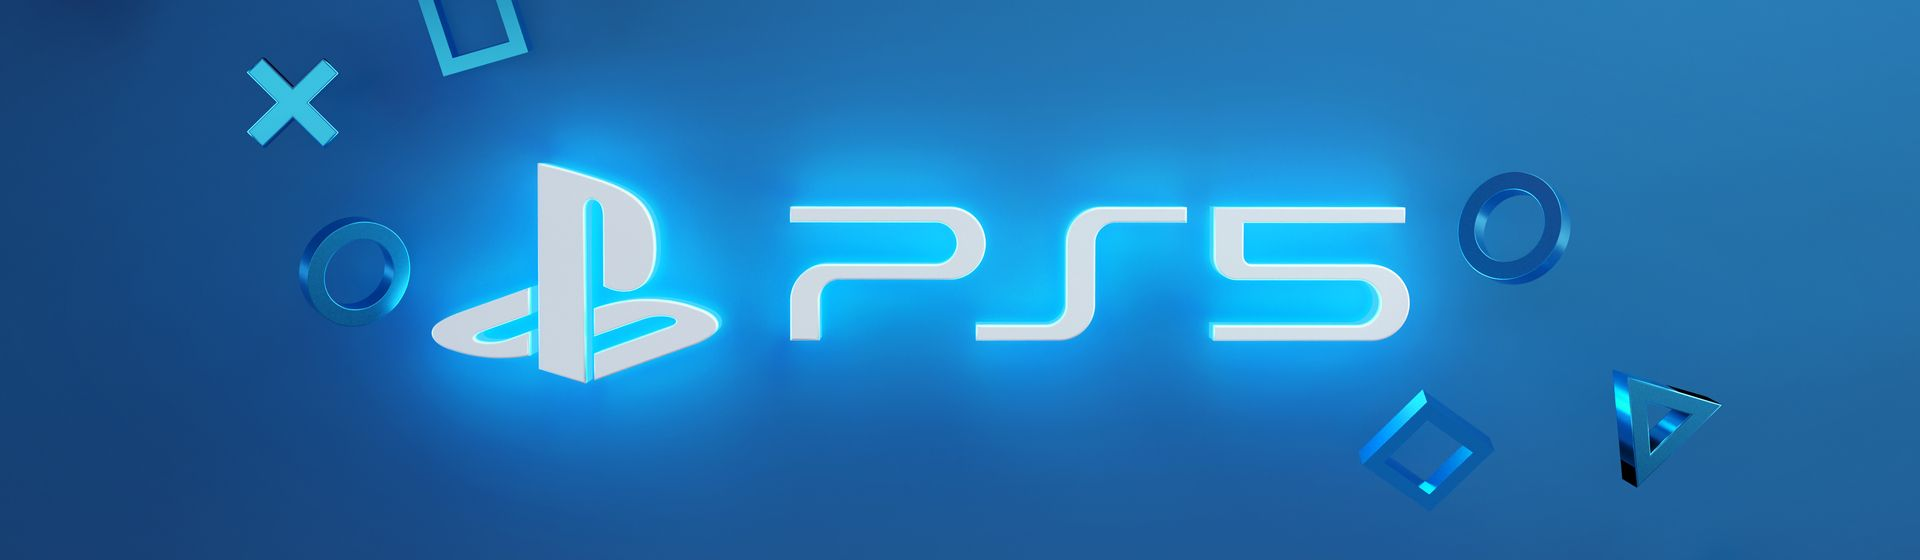 PS5 pode ter retrocompatibilidade com PS3, PS2 e PS1, aponta rumor